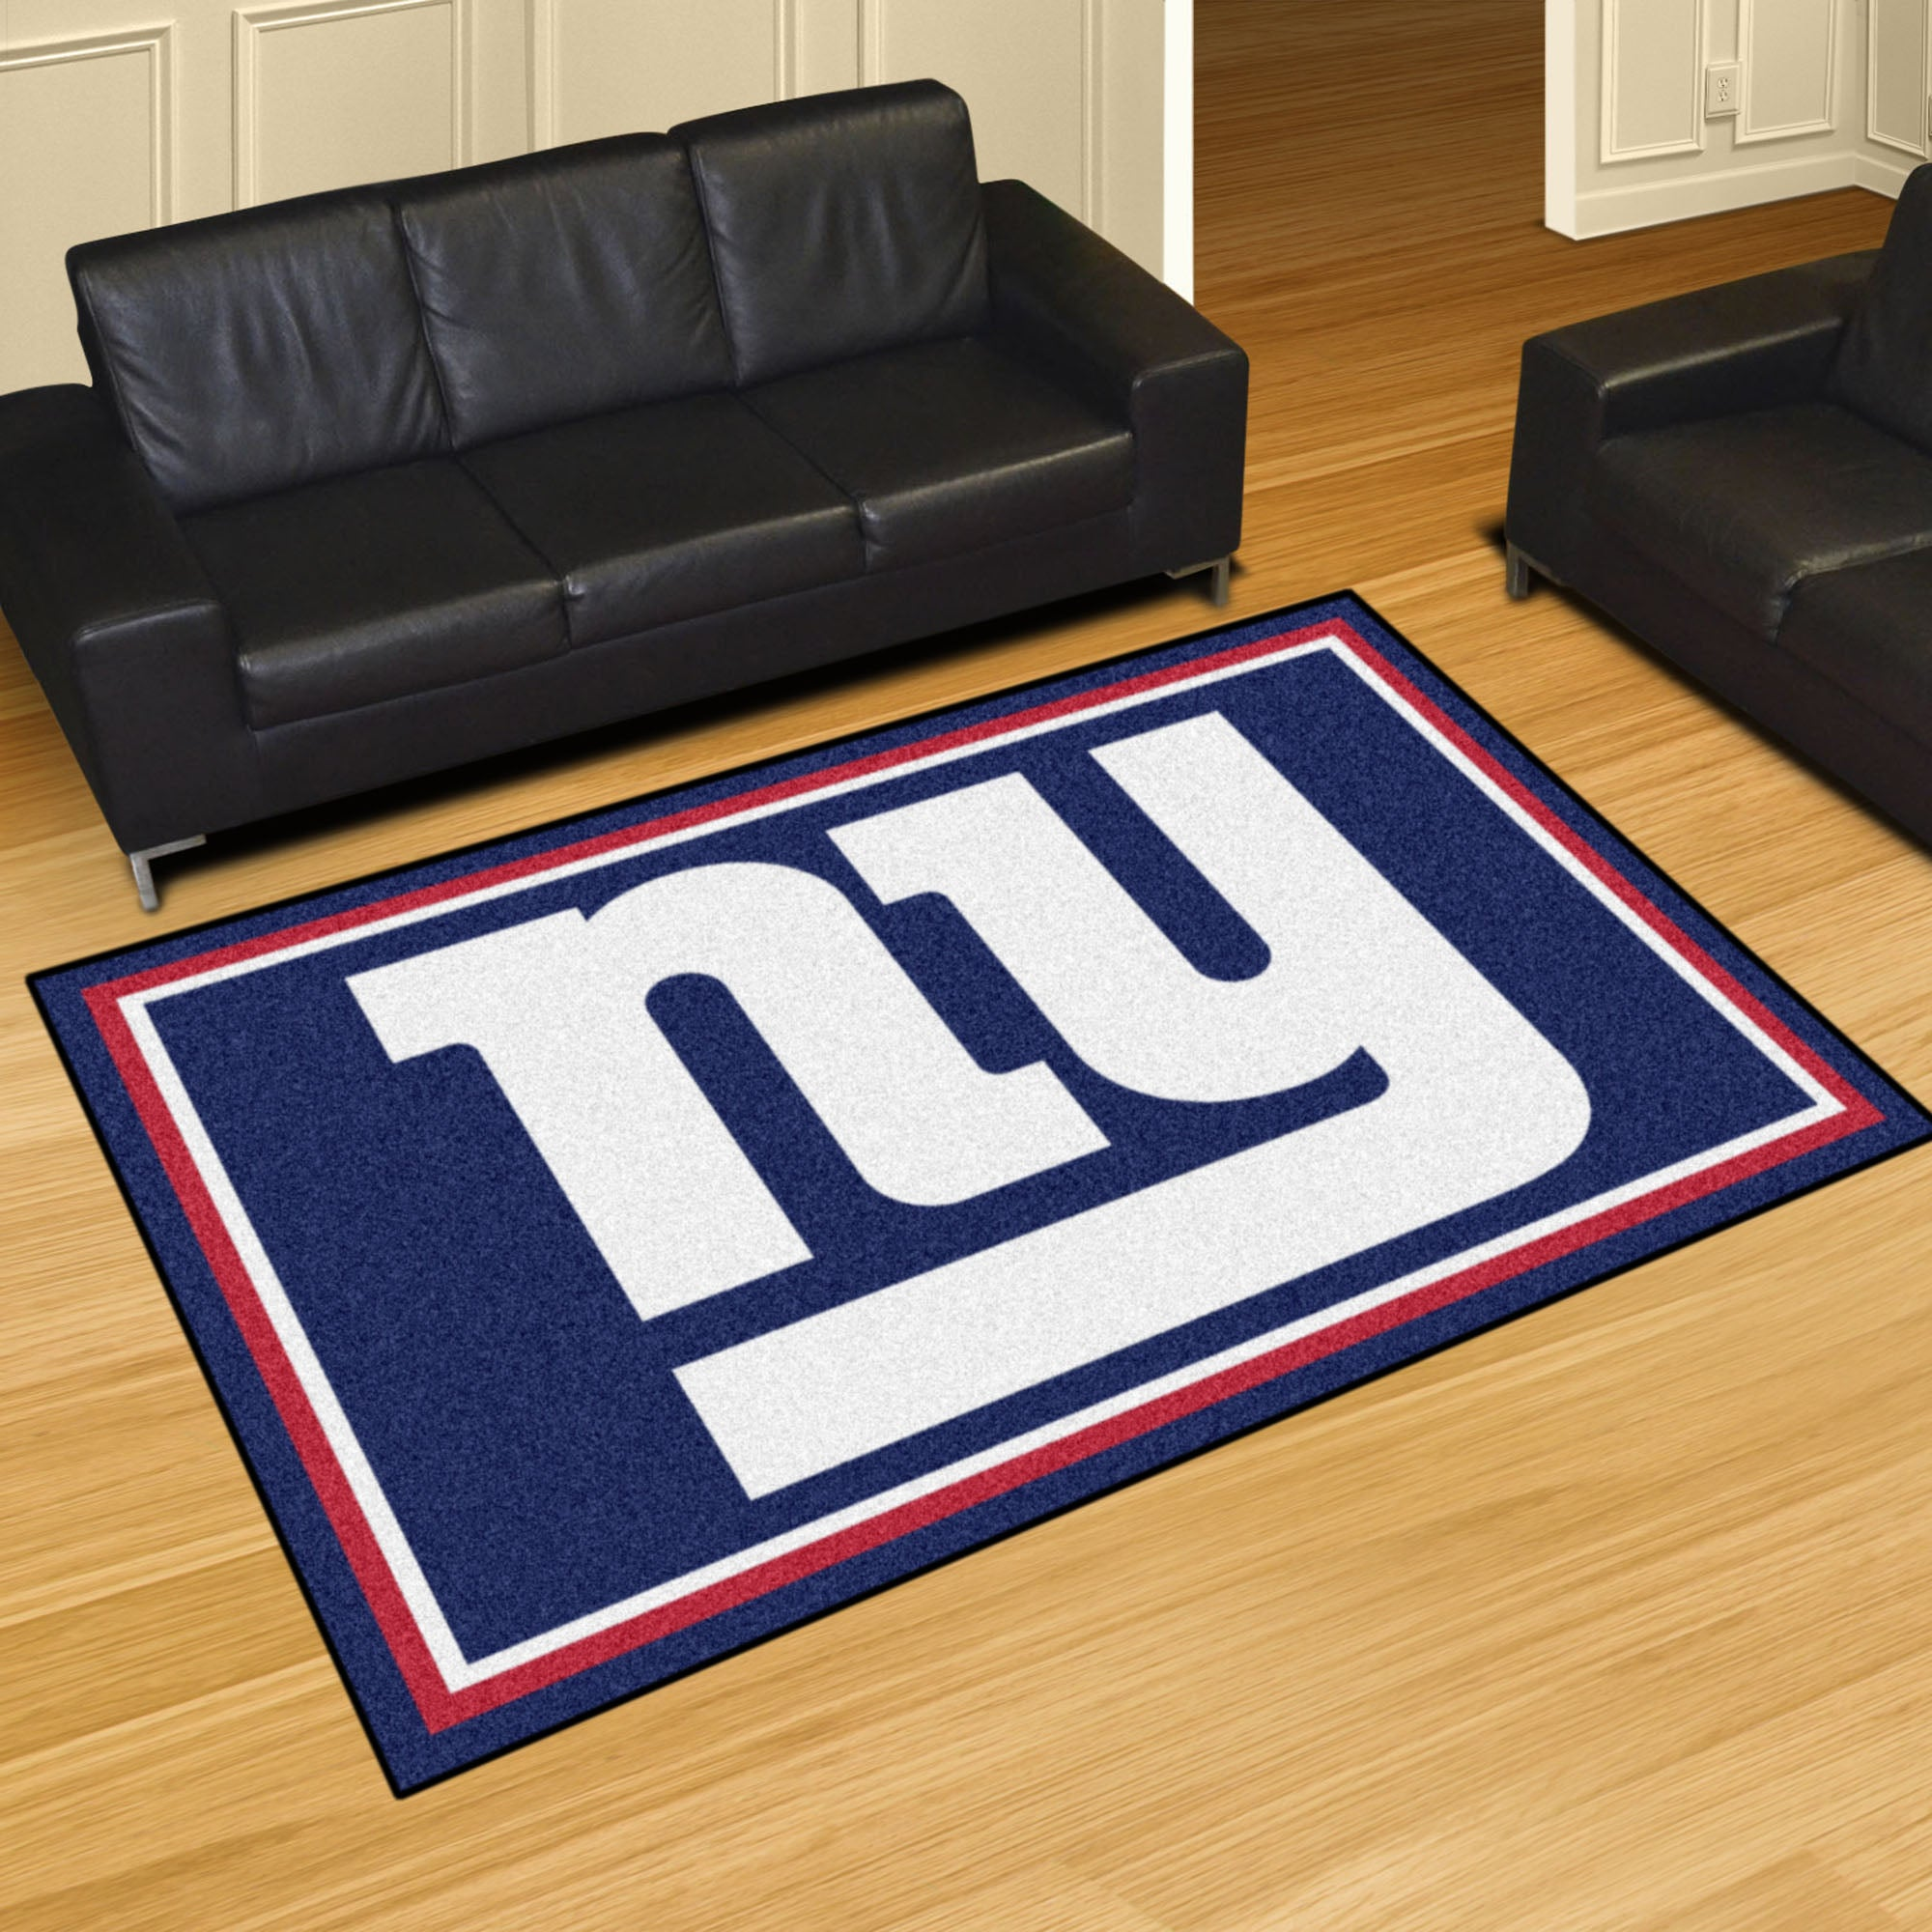 New York Giants Plush Rug  NFL Area Rug - Fan Rugs